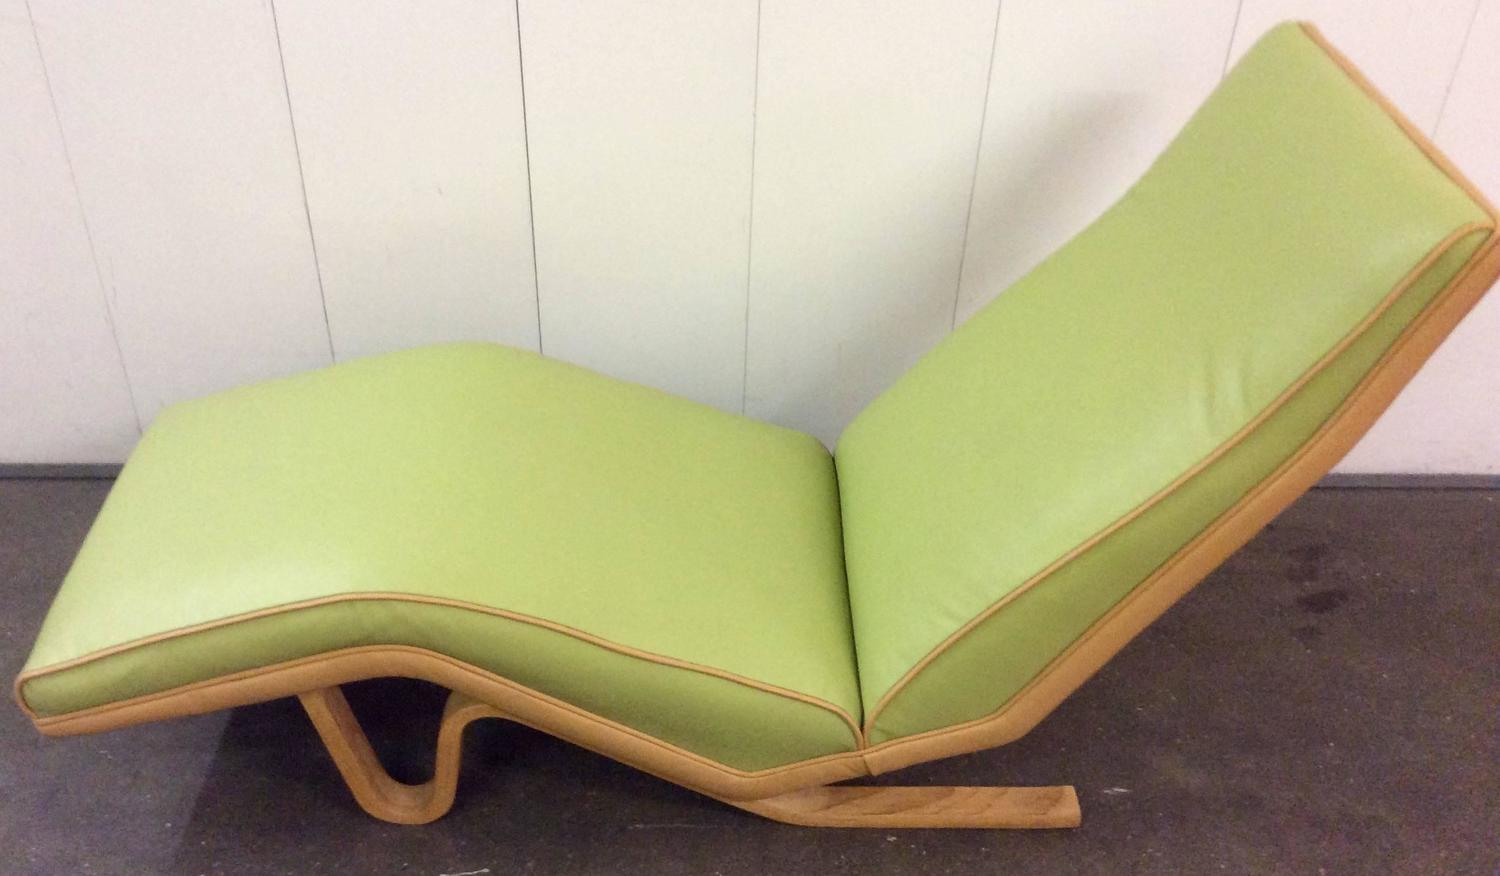 Andrew j milne chaise longue for sale at 1stdibs for Chaise longue london